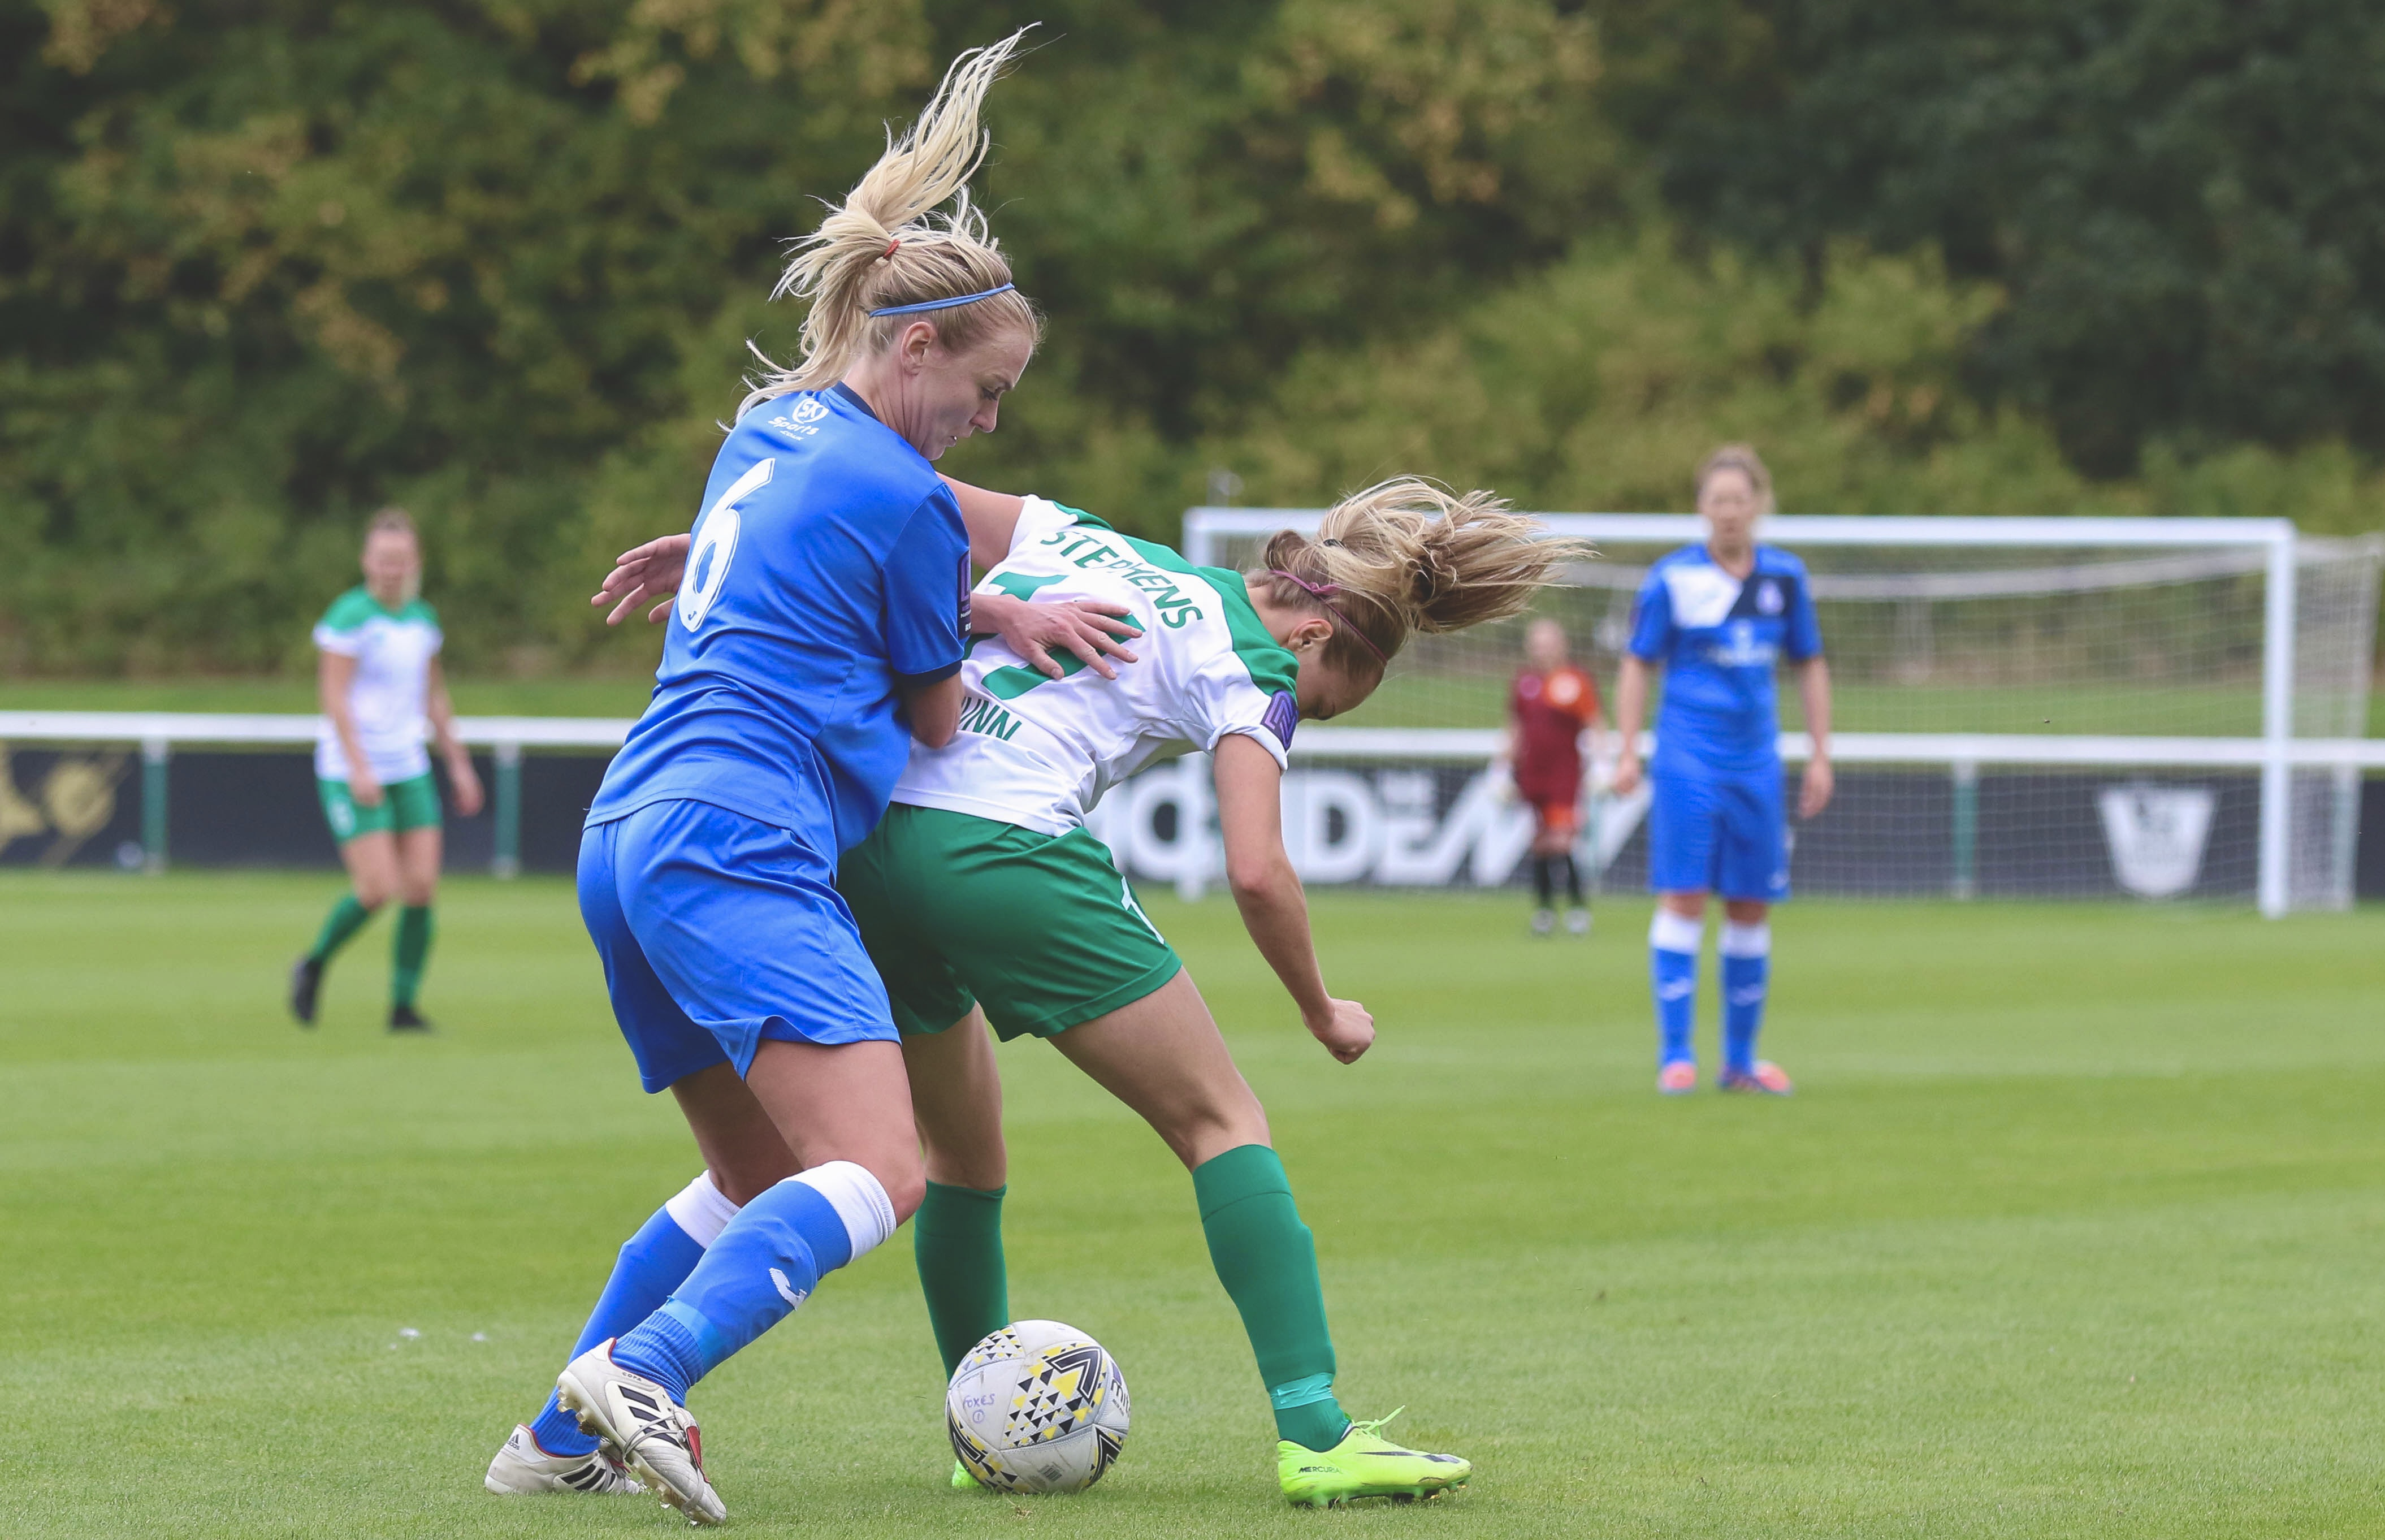 Chichester's Tash Stephens holds off the Loughborough player